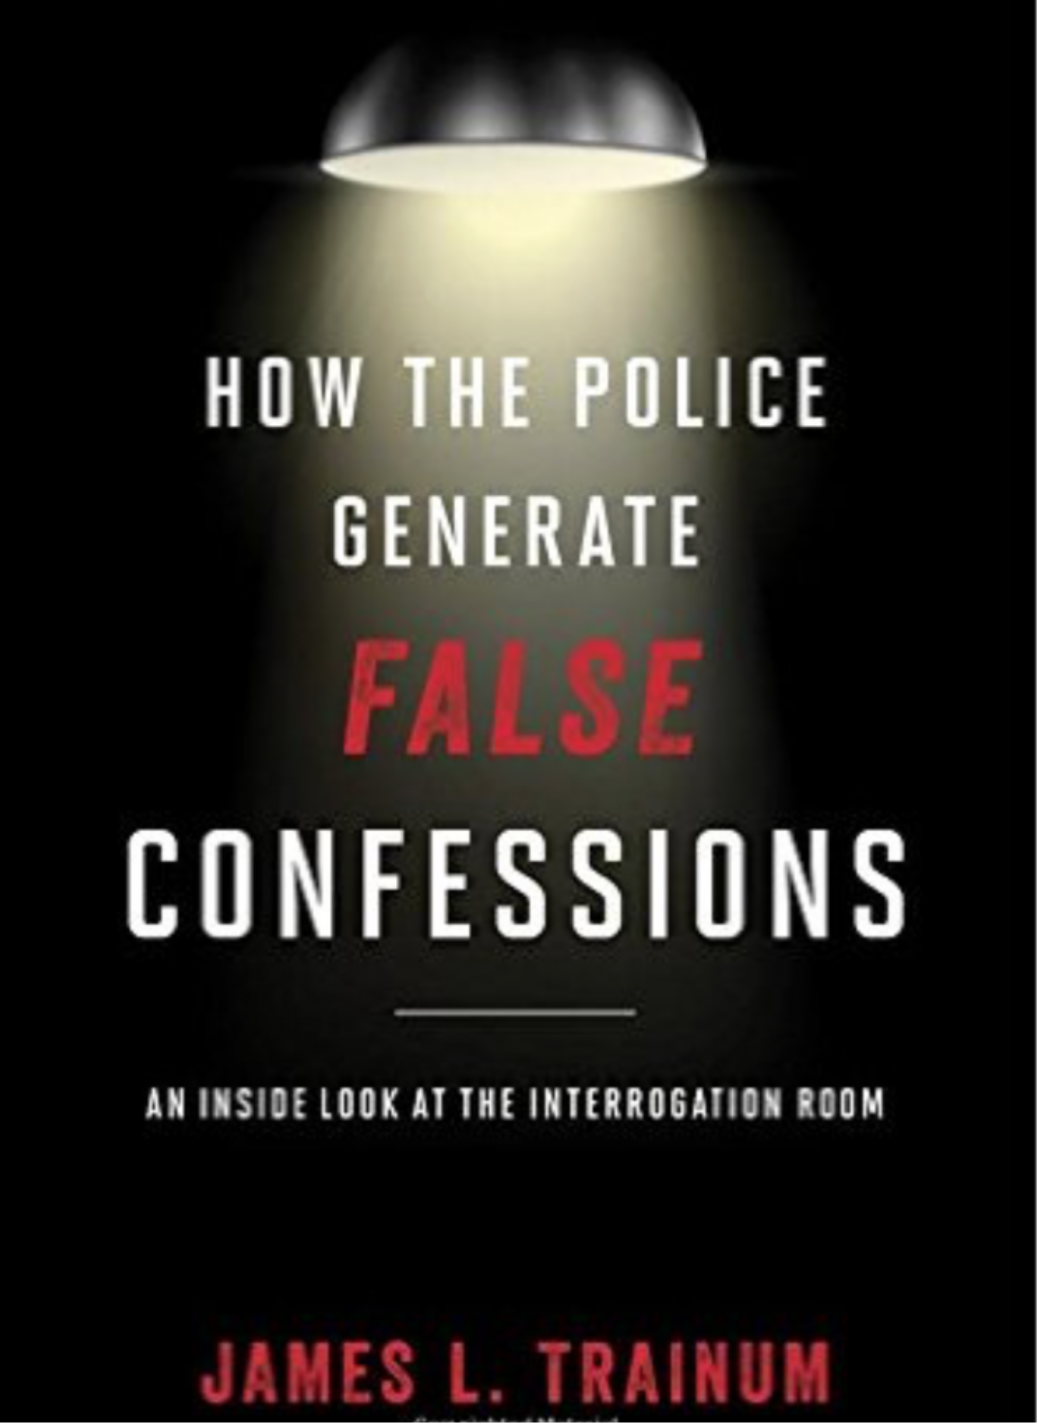 Police Generate FALSE CONFESSIONS